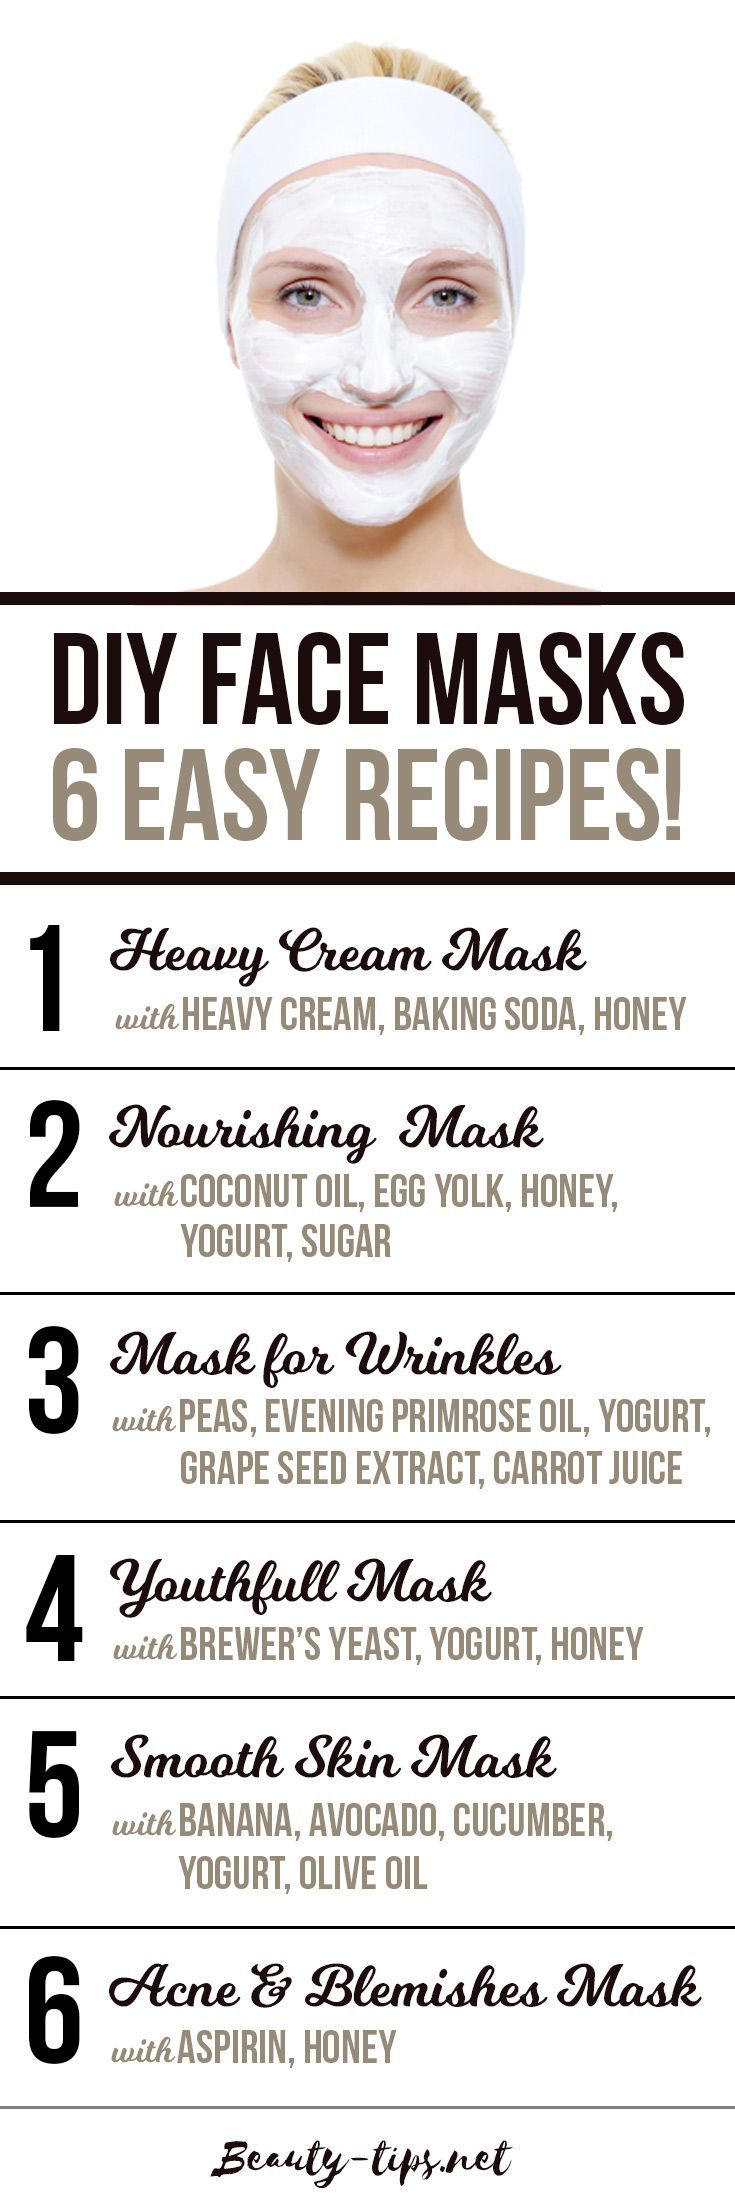 DIY Face Masks. 6 Simple, Homemade Face Mask Recipes. DIY Face Mask for Wrinkles, Acne, Blemishes and to nourish your facial skin: http://www.beauty-tips.net/homemade-face-masks-6-simple-diy-recipes/